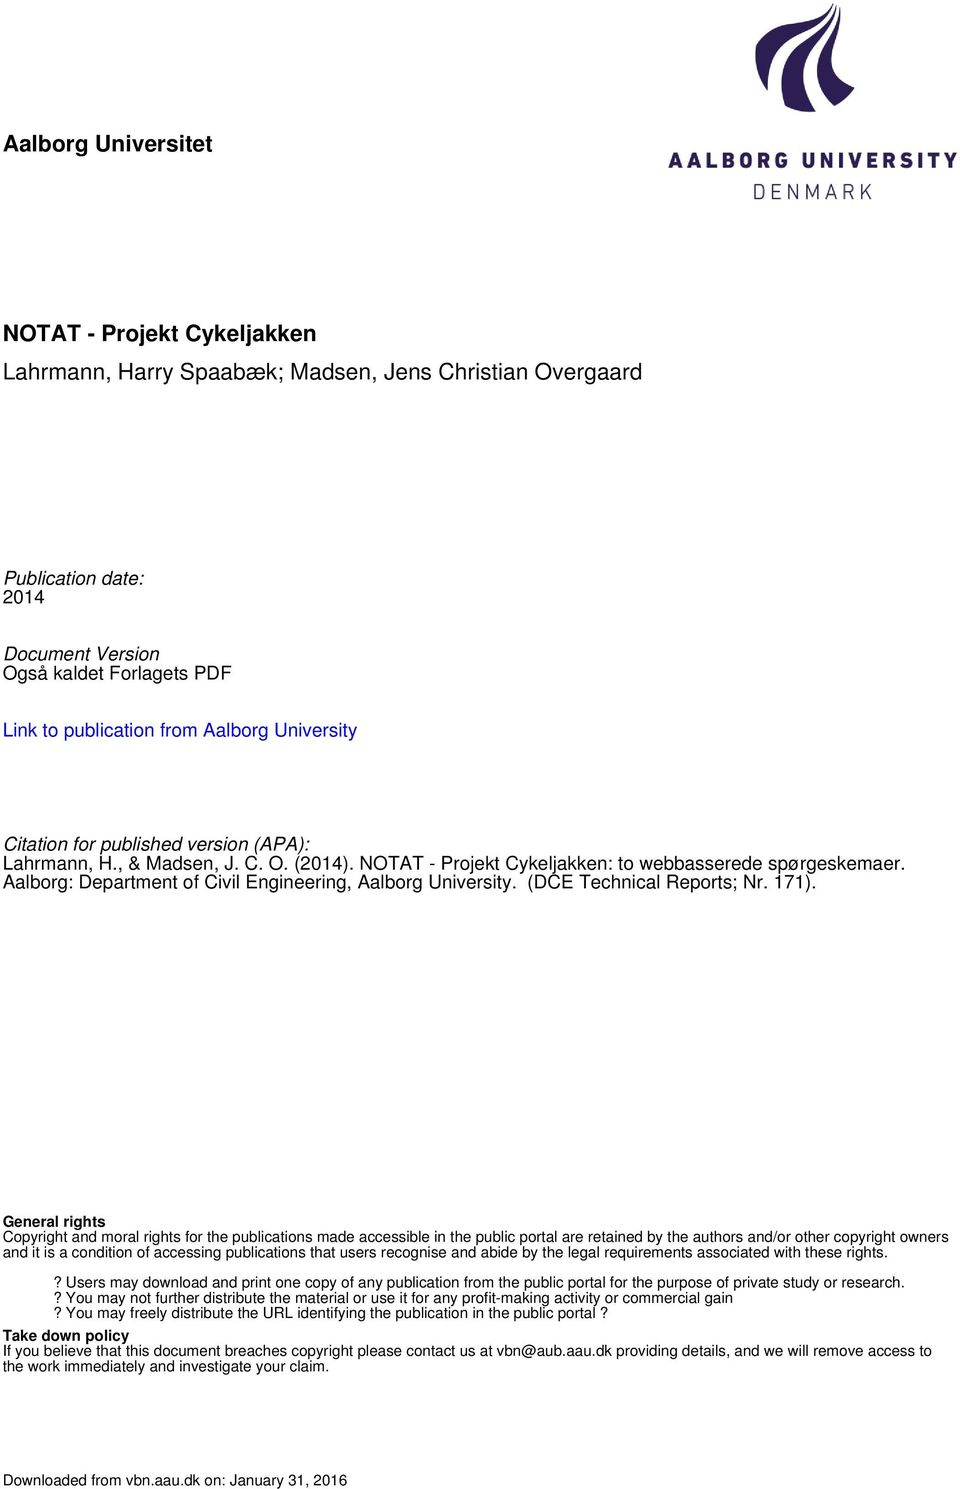 Aalborg: Department of Civil Engineering, Aalborg University. (DCE Technical Reports; Nr. 171).